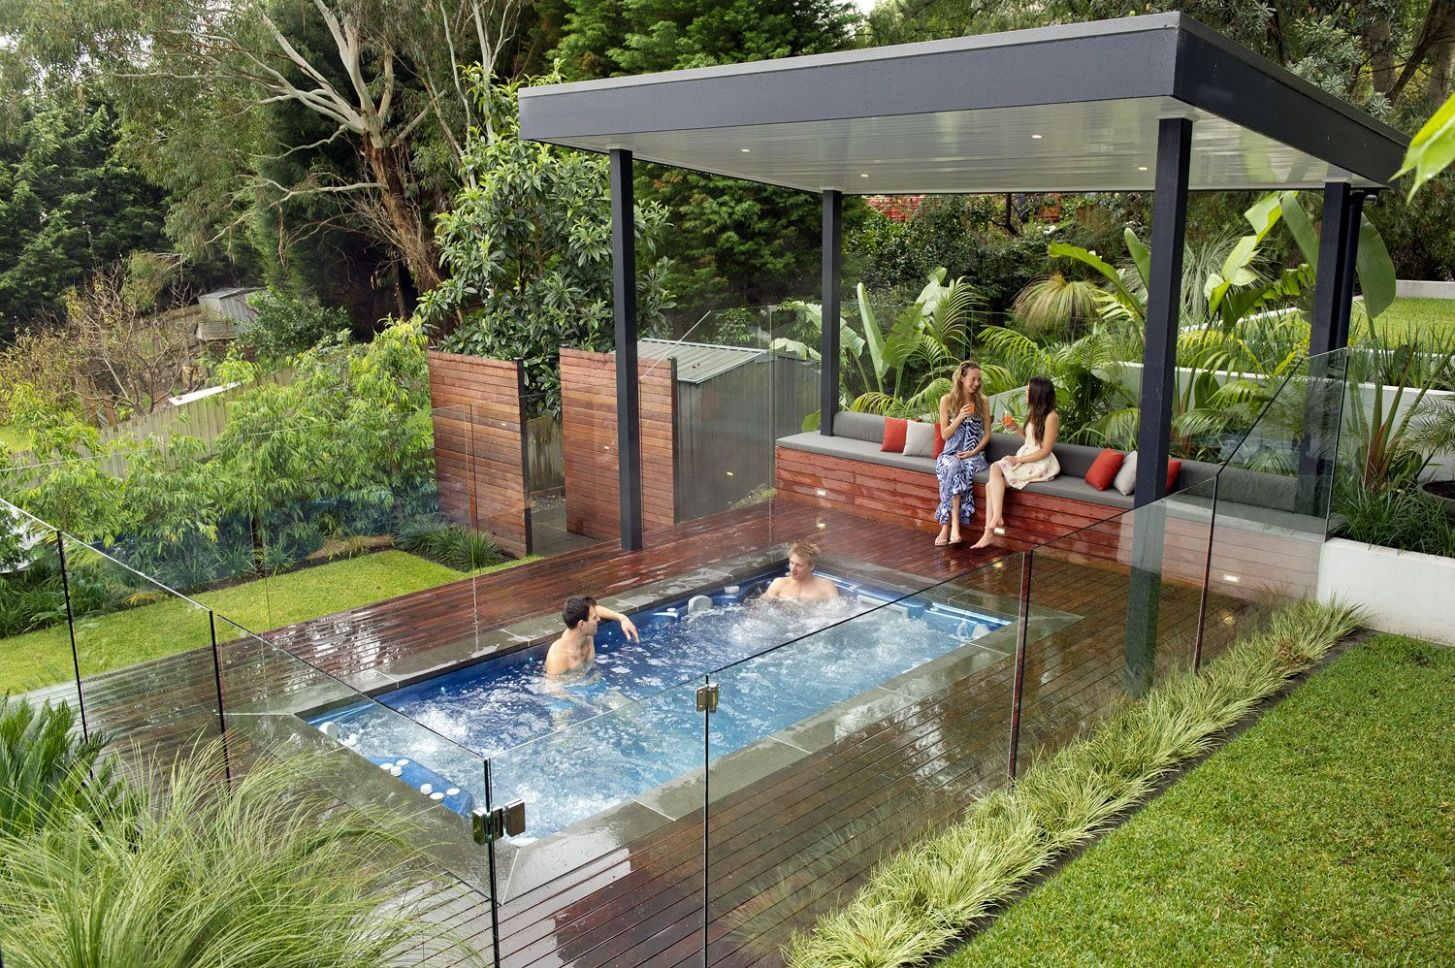 About Us - Endless Pools and Spas | Outdoor spa, Swim spa ...